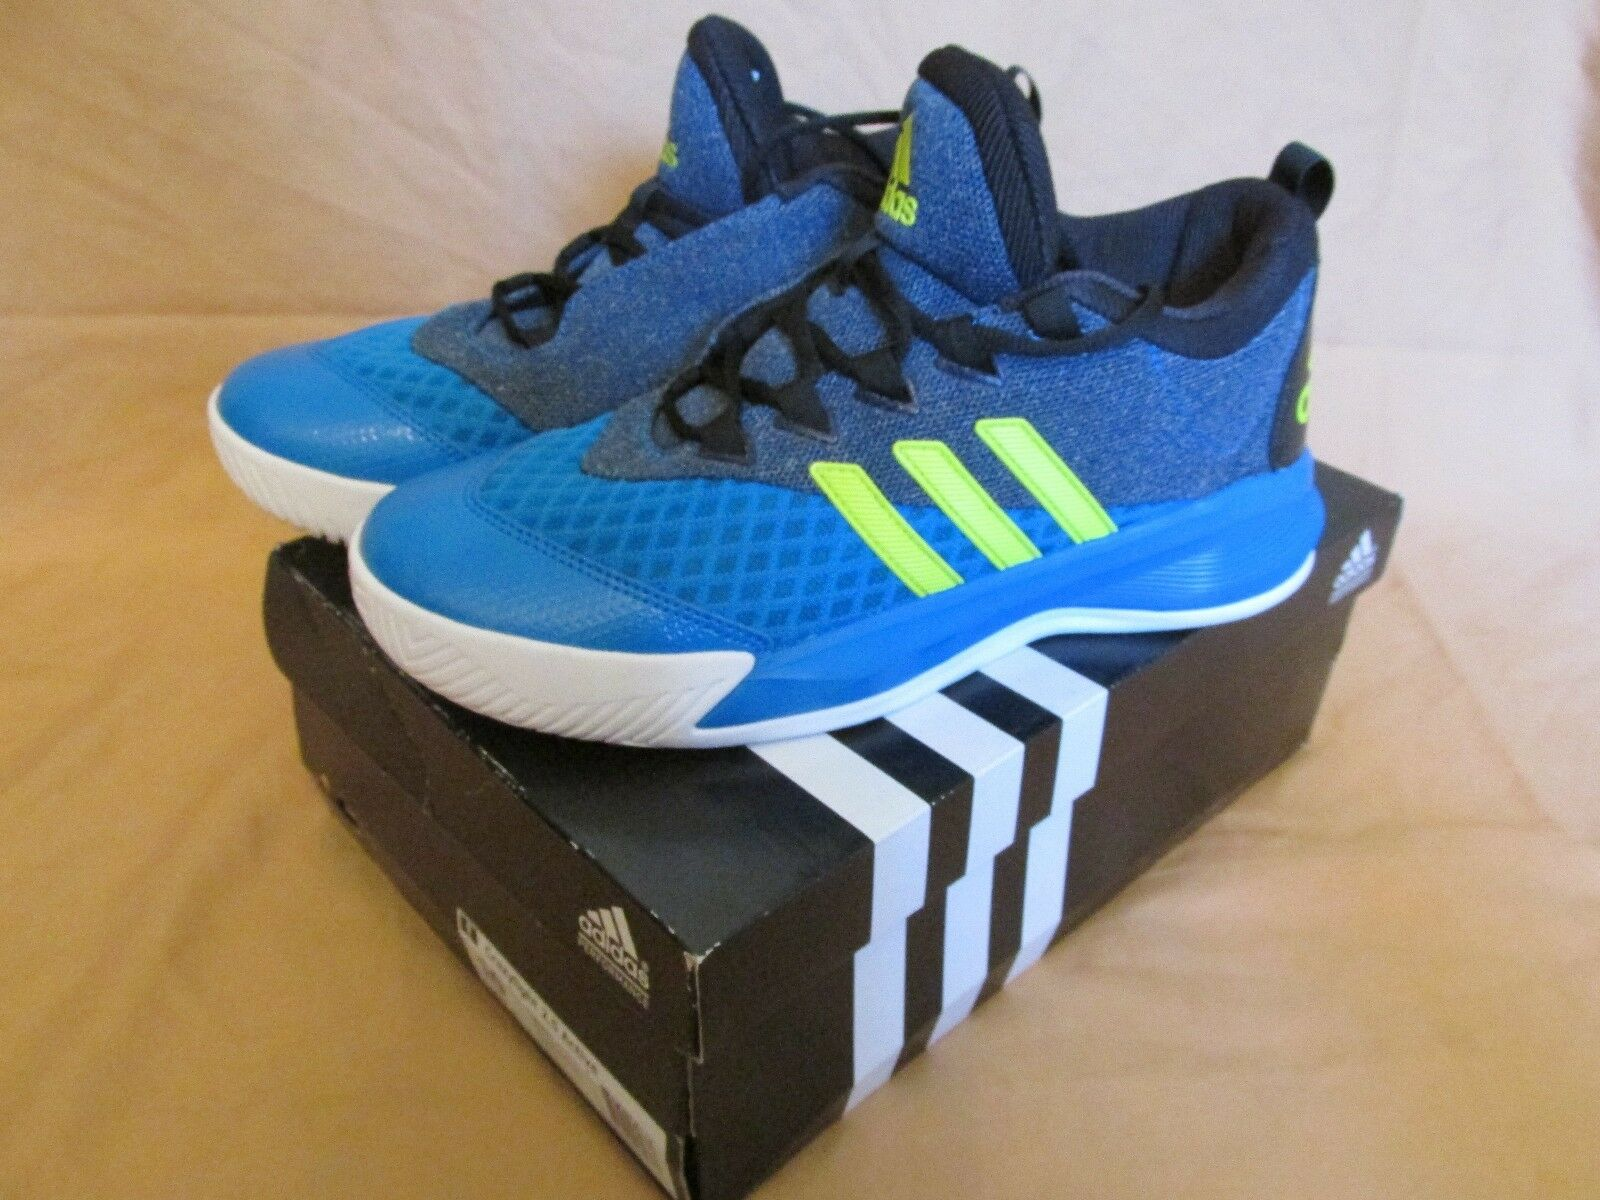 Adidas Crazylight 2.5 Active Blue & Neon Men's Basketball Shoes Trainers AQ8597